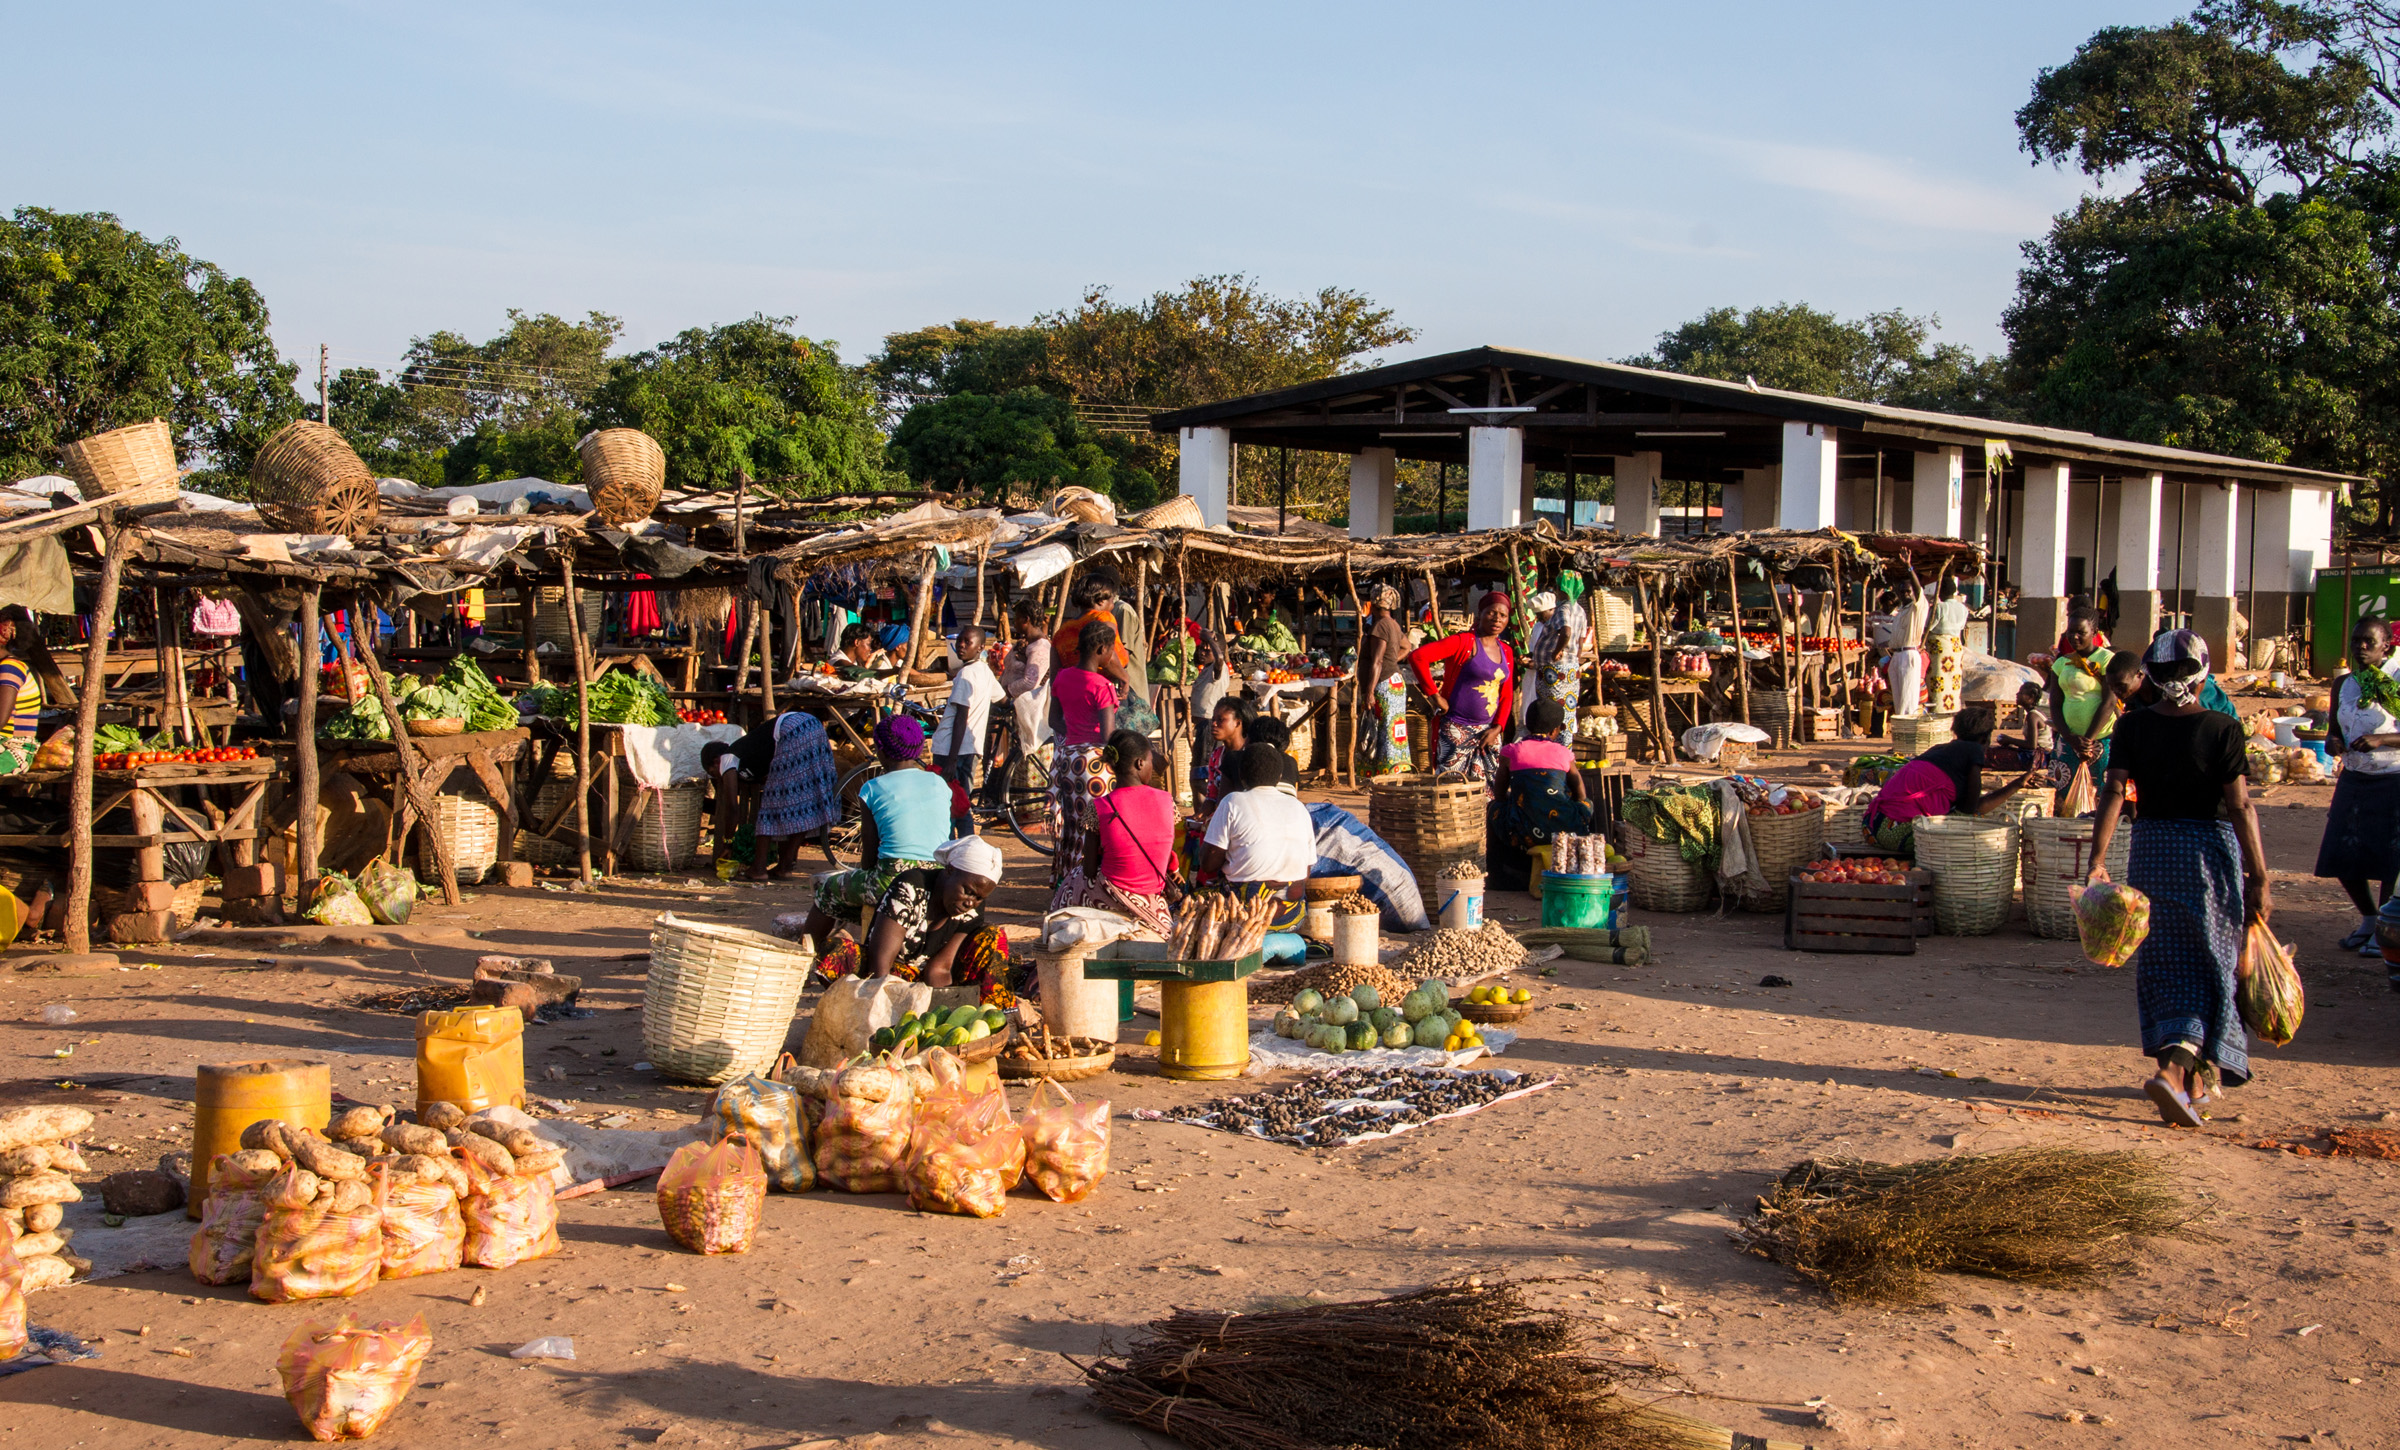 Market in Ibenga, Zambia - by JJ Vos